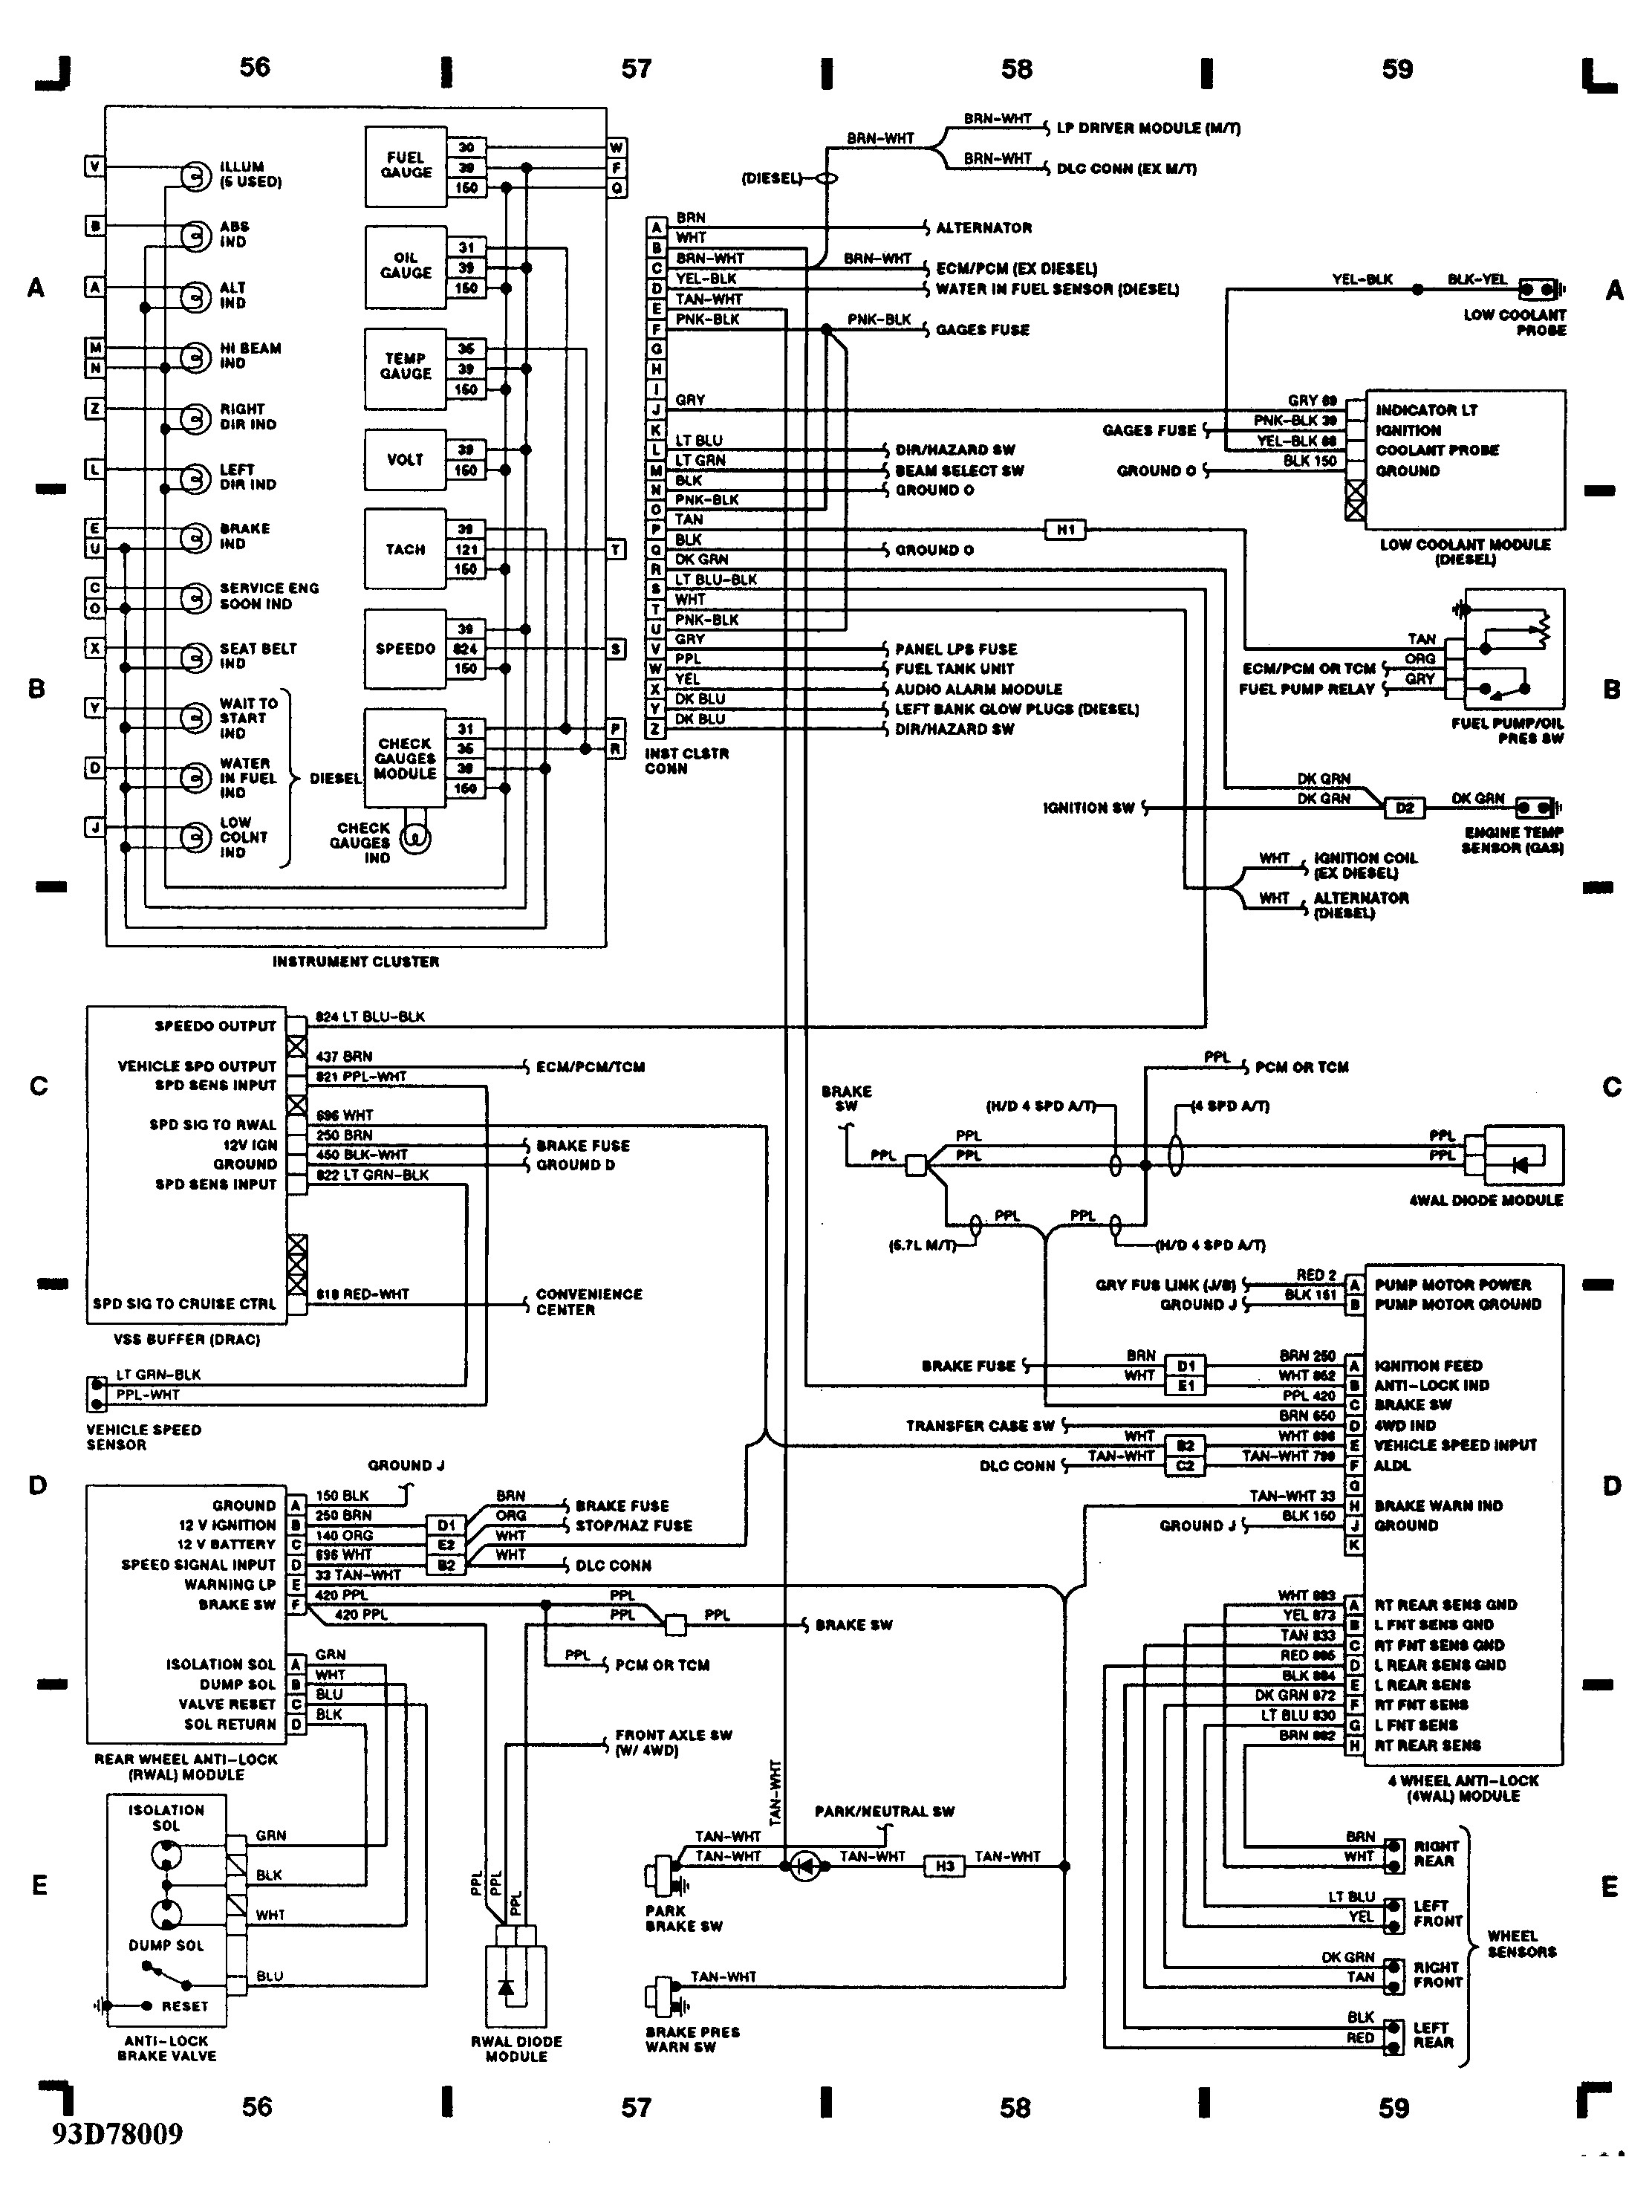 1979 Chevy Truck Wiring Diagram Free Chevrolet Headlight Switch Download